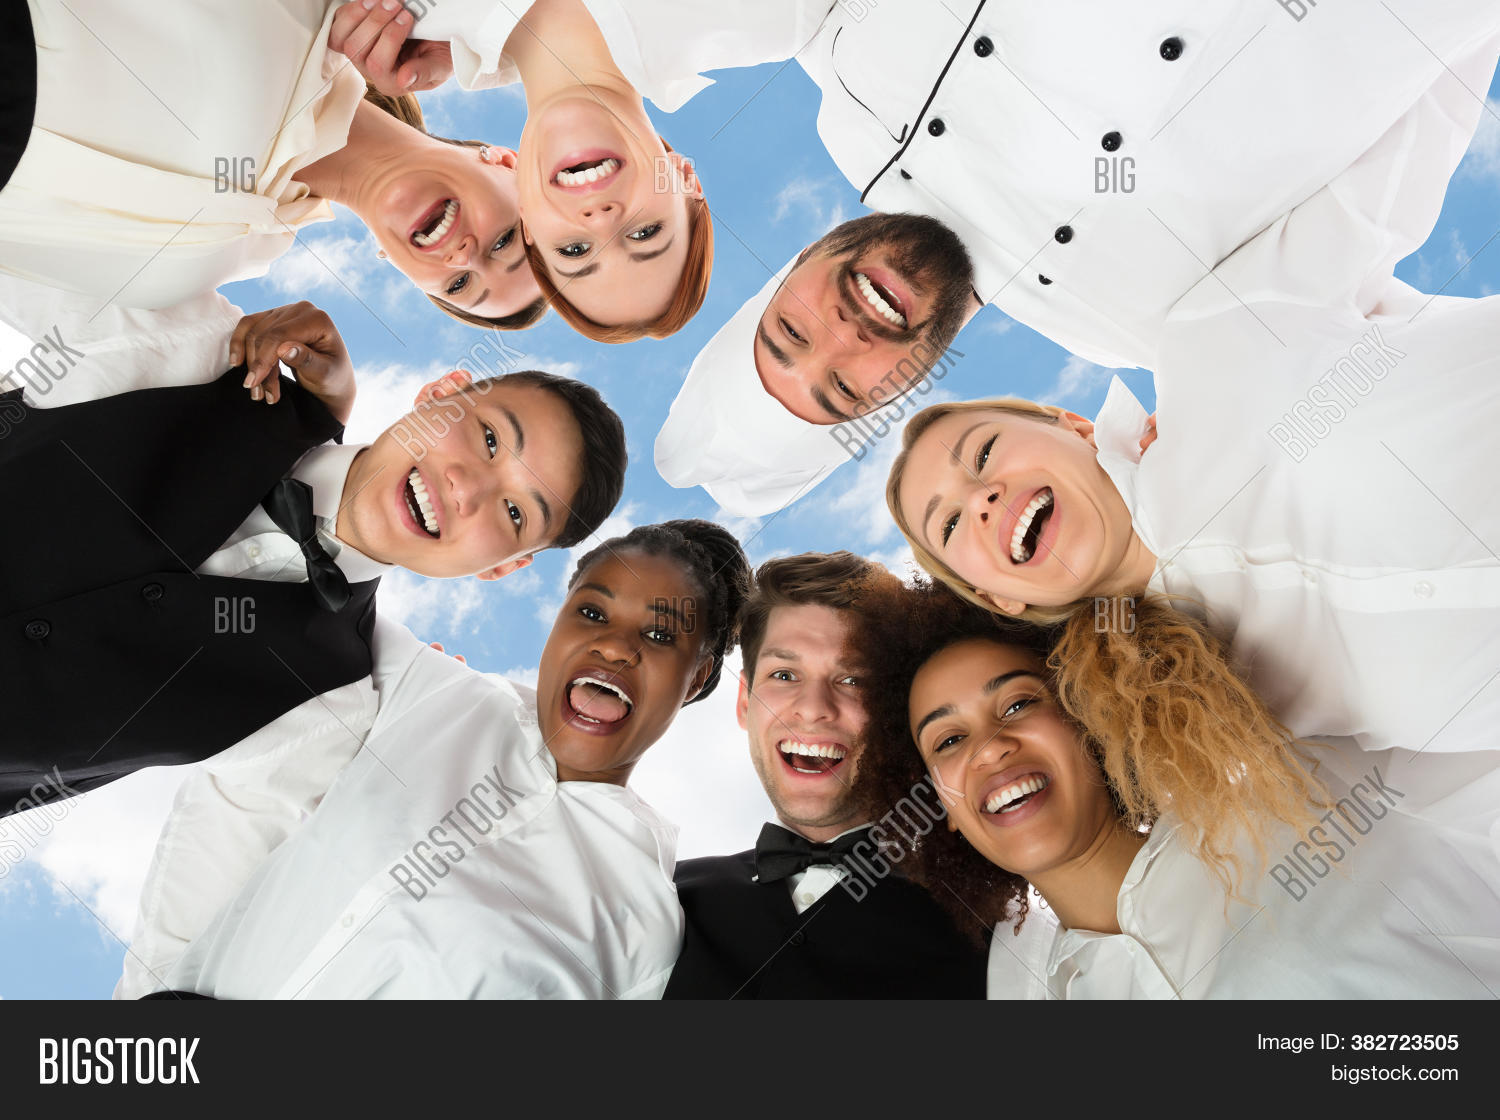 Restaurant Waiter Image Photo Free Trial Bigstock